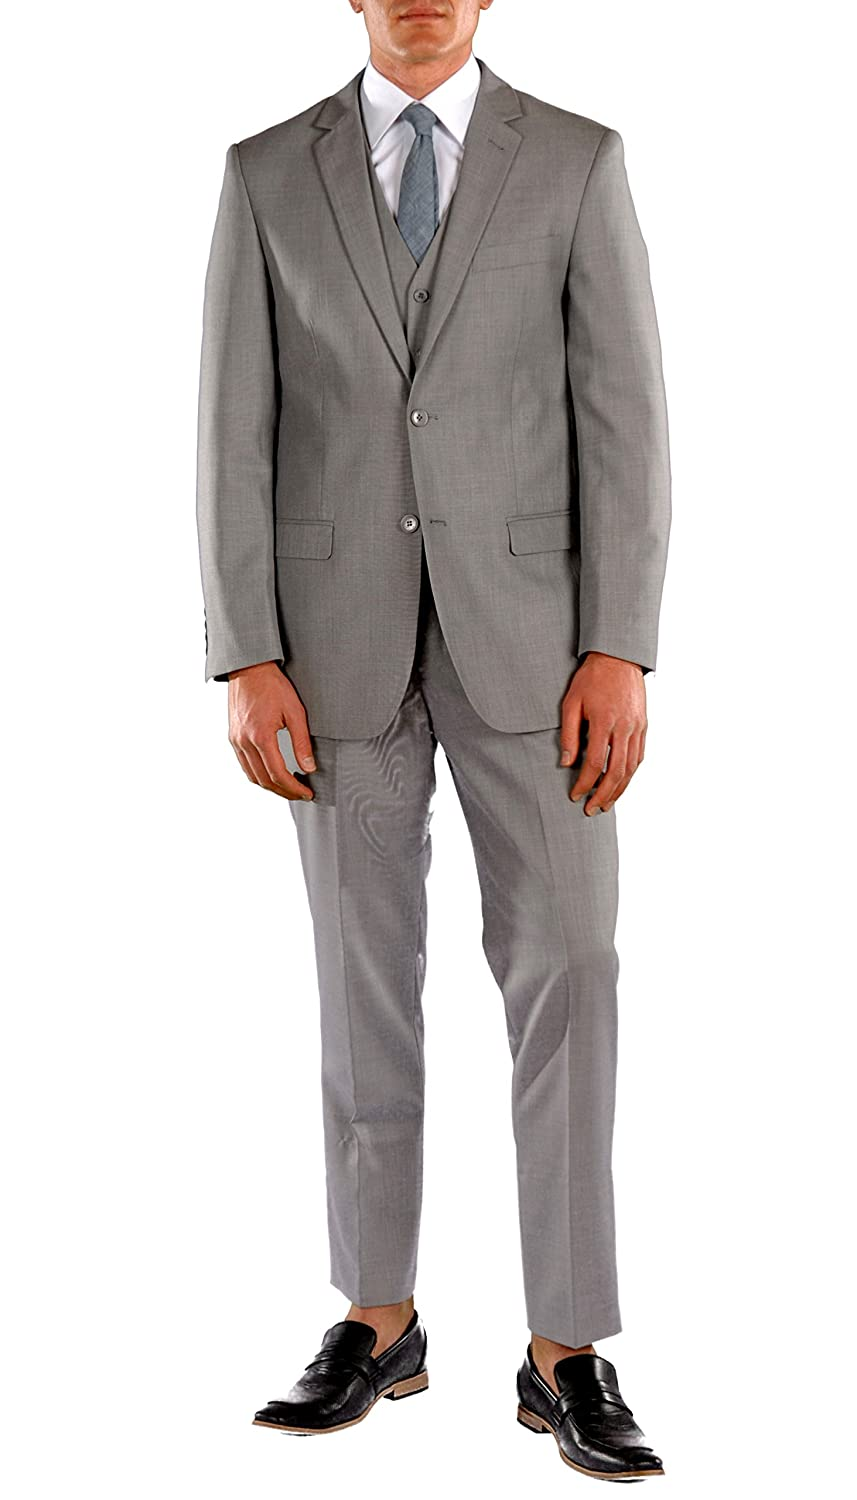 Ferrecci Zonettie Mens Slim Fit 3-Piece Suits - Blazer Jacket Trousers & Vest LAZIO